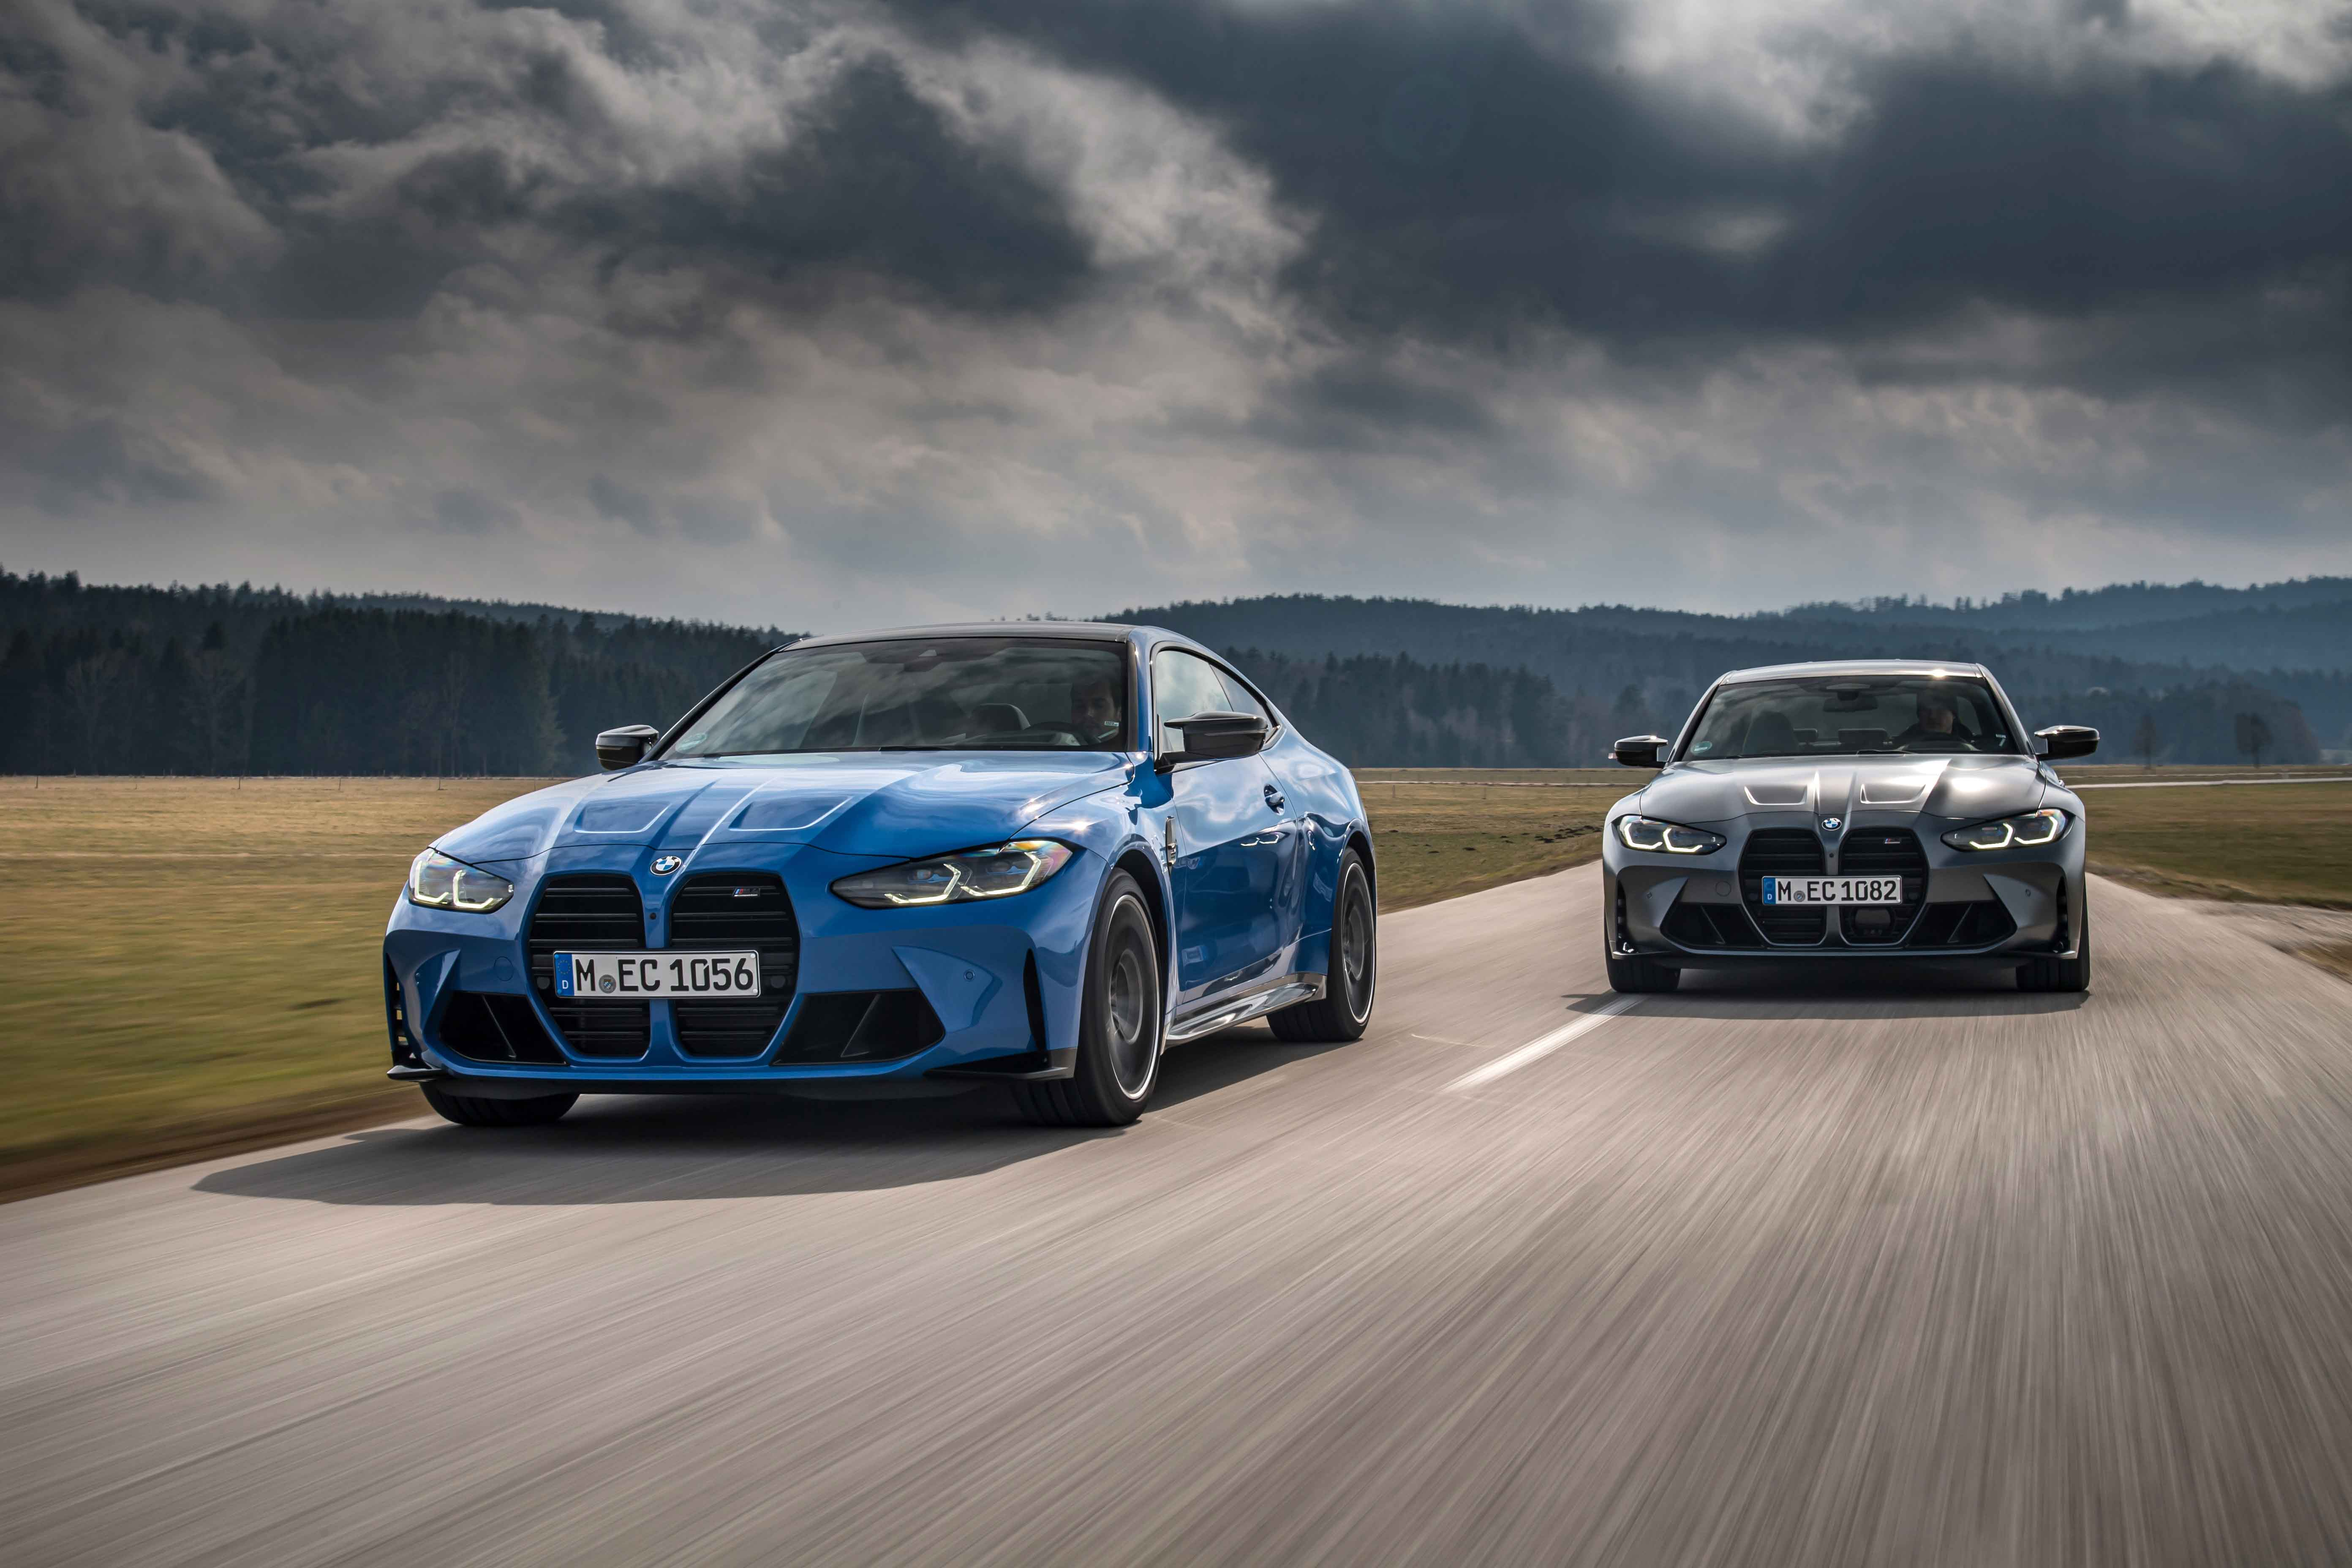 M xDrive makes its debut in the BMW M3 and BMW M4